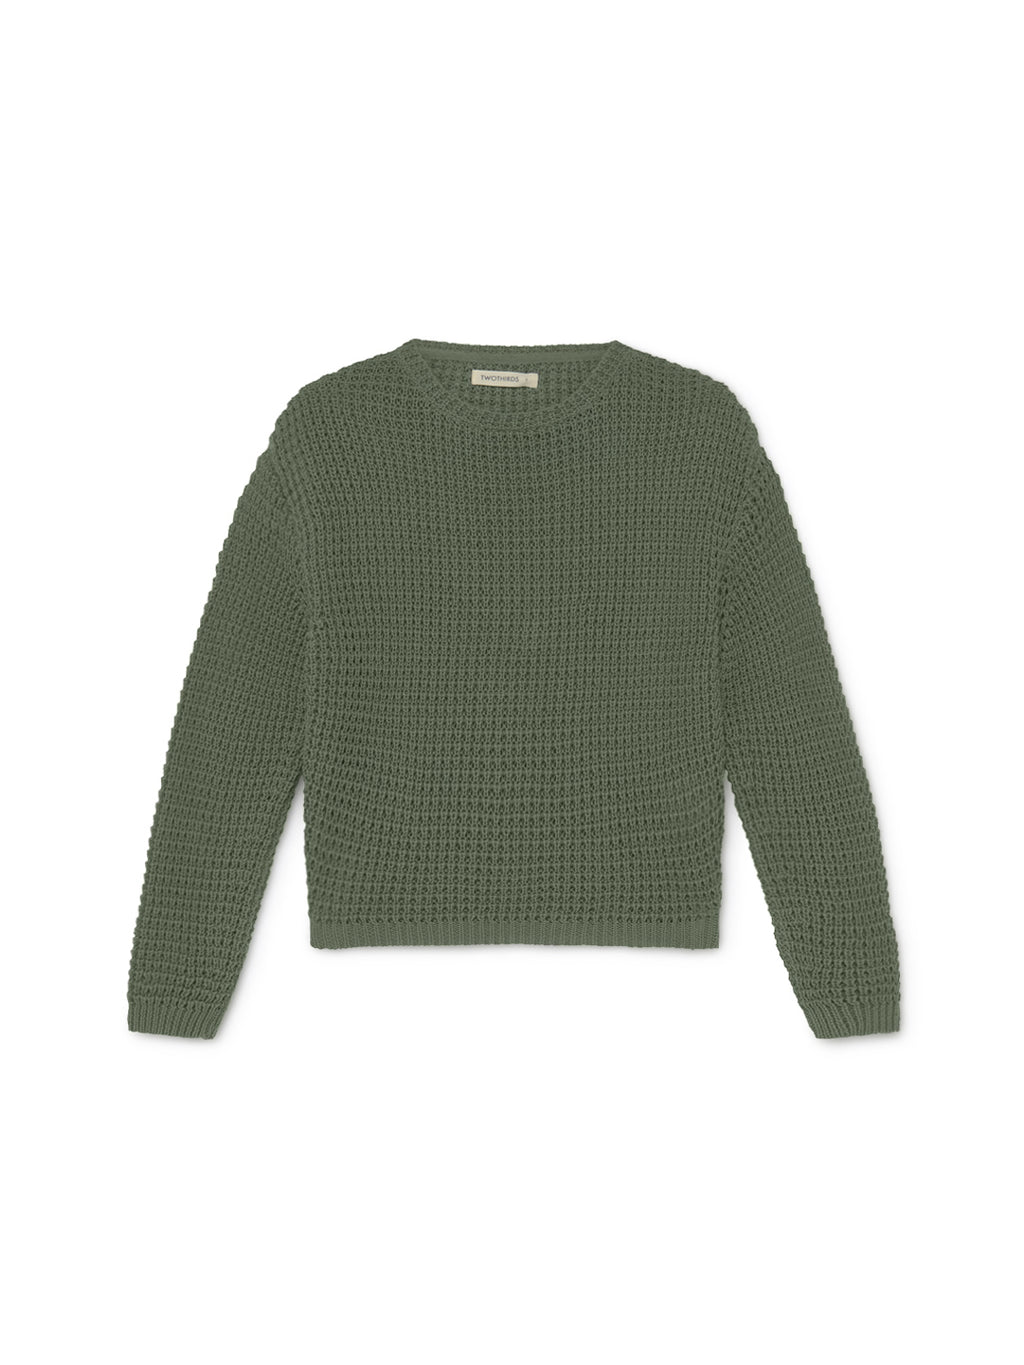 TWOTHIRDS Womens Knit: Teresa - Dusty Green front